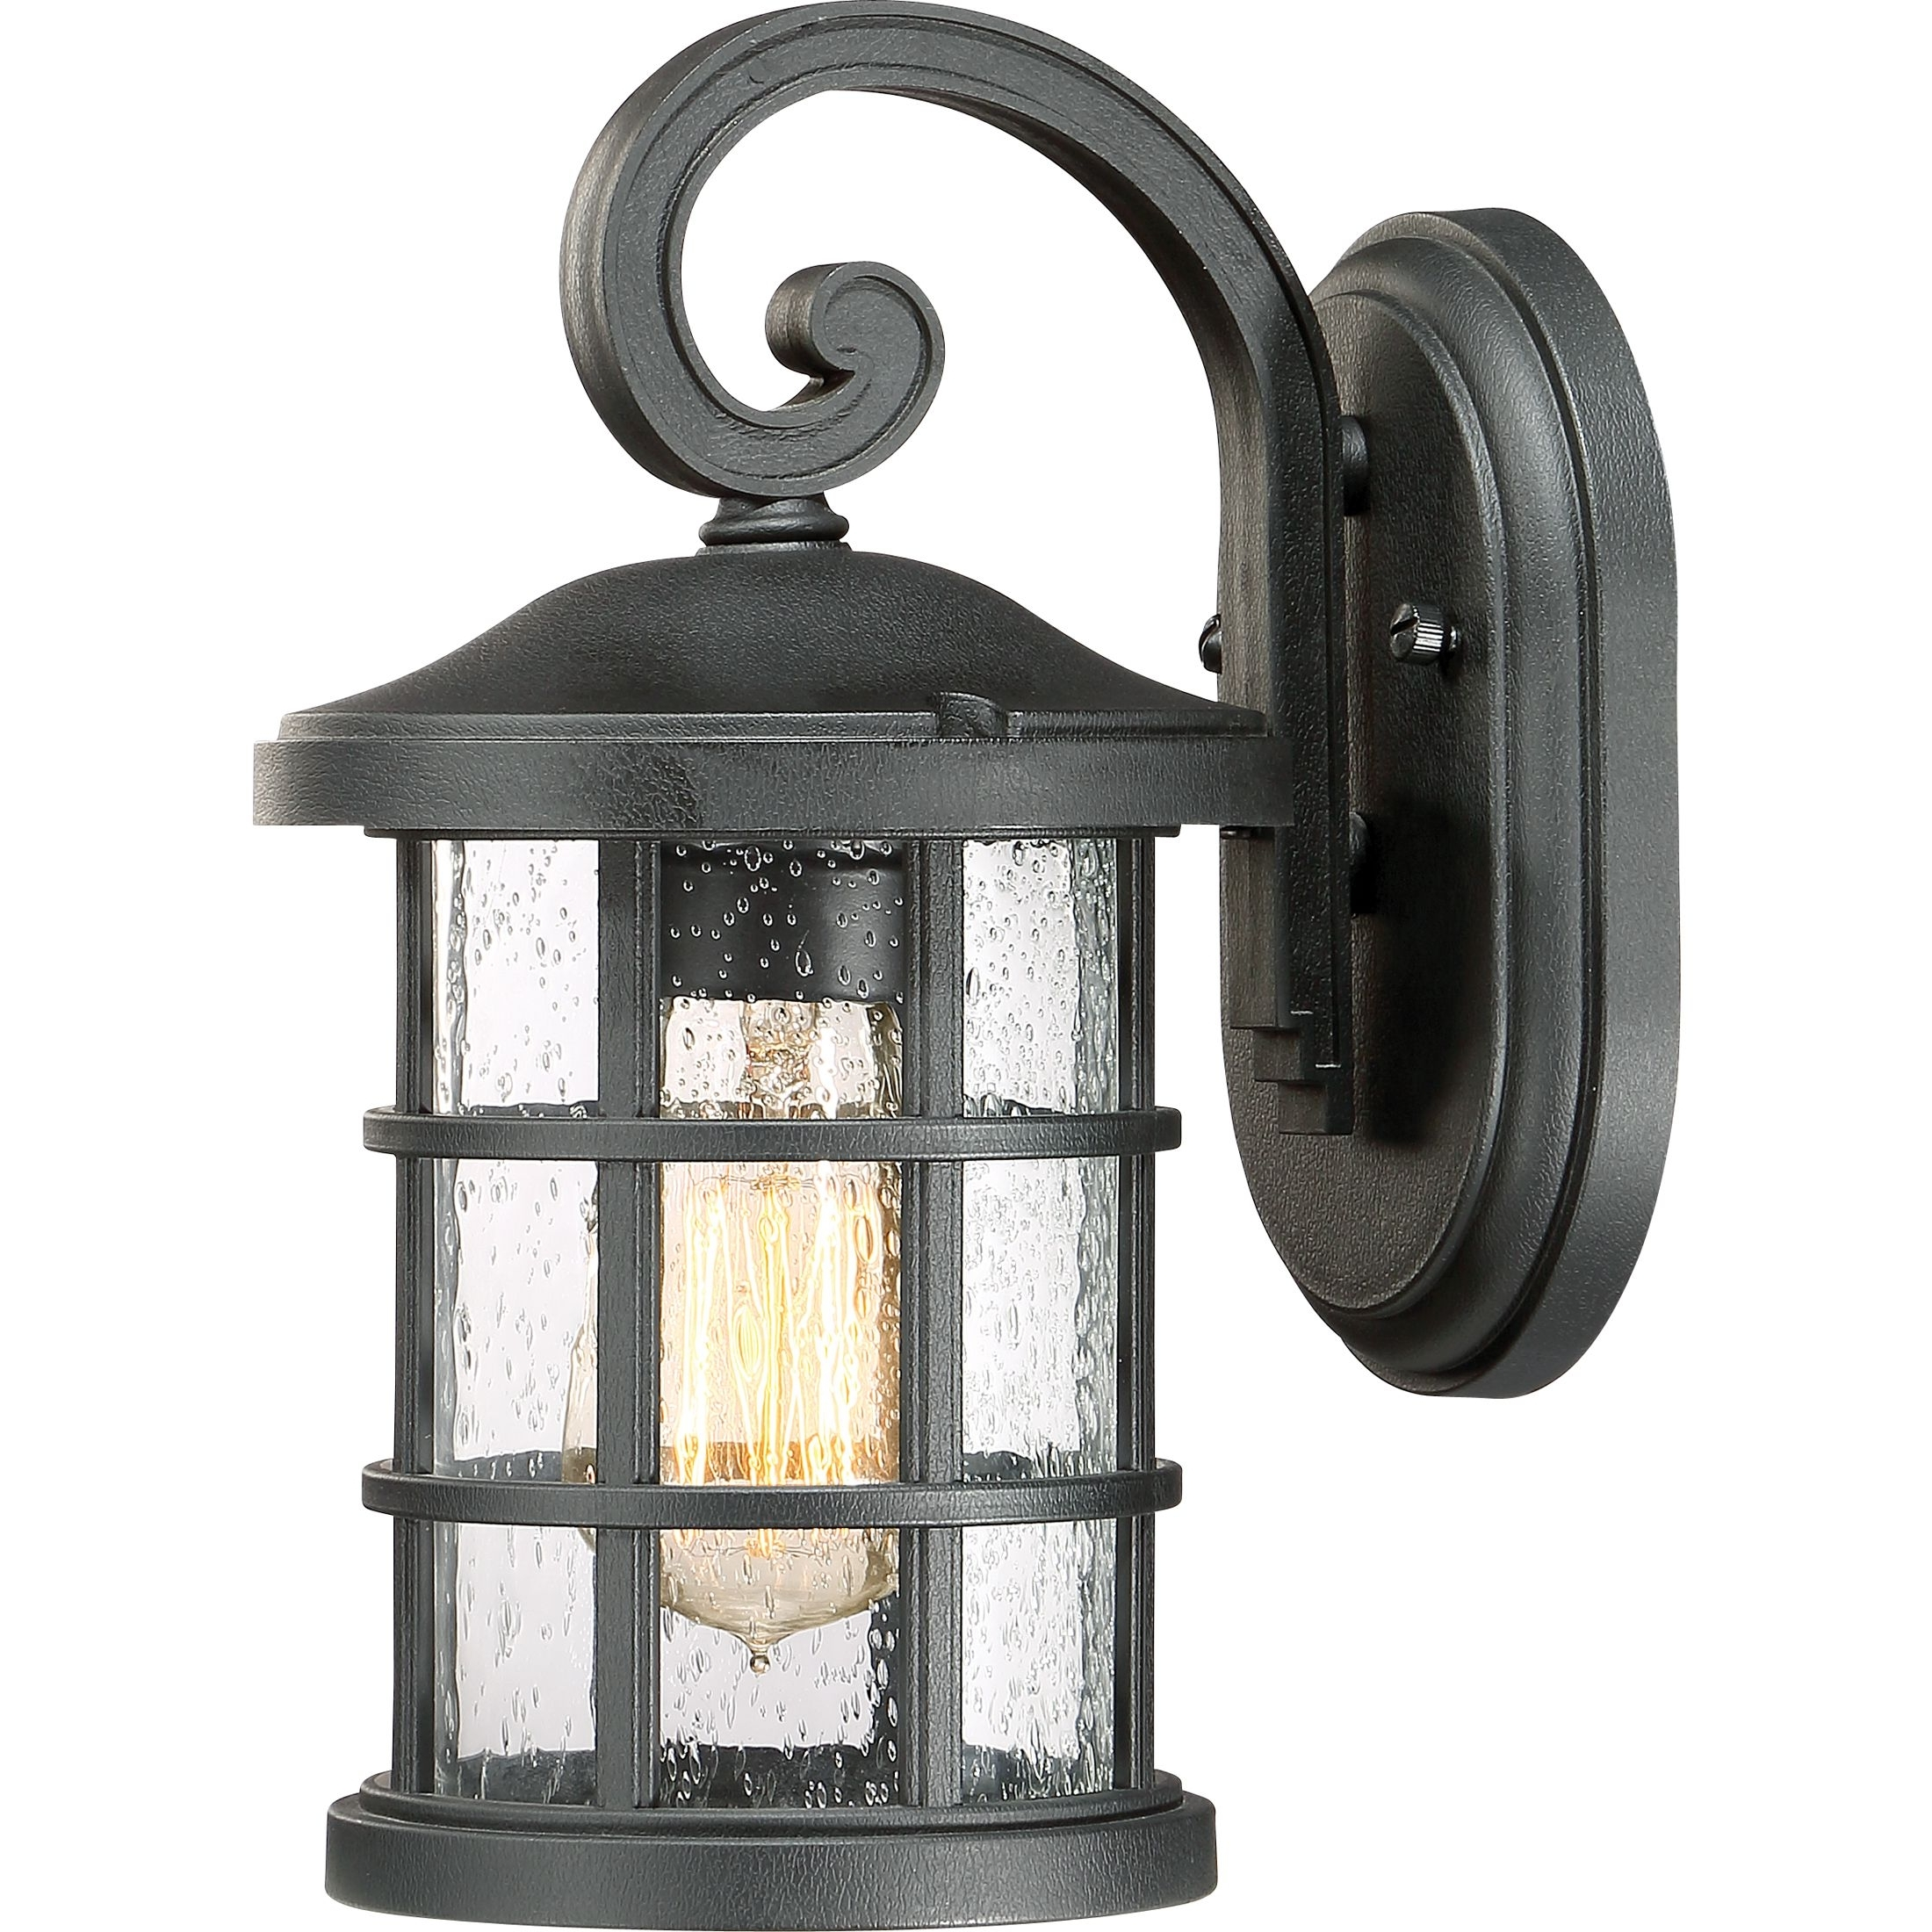 Crusade Outdoor Lantern (Gallery 7 of 20)